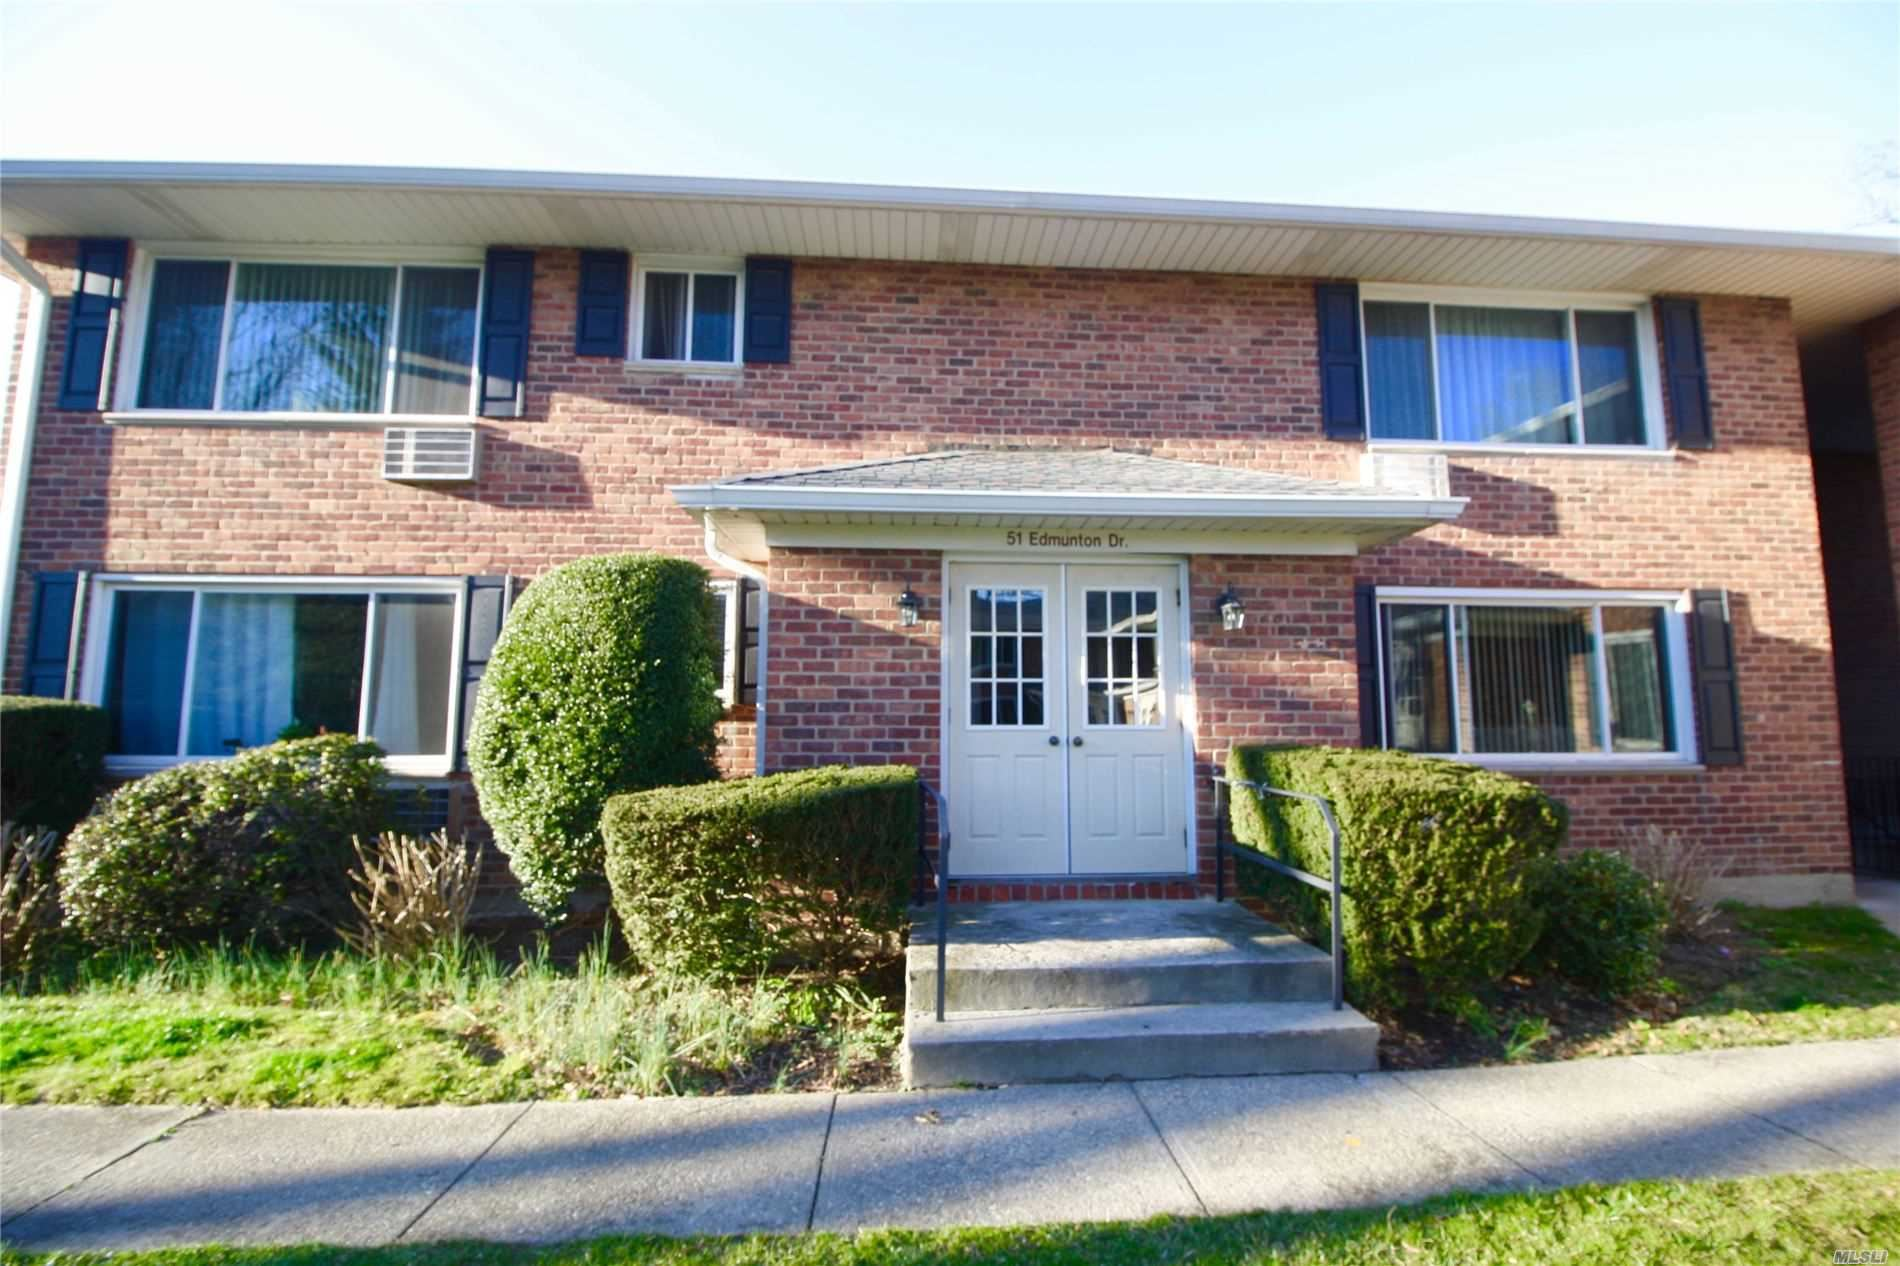 51 Edmunton Drive #F-18, North Babylon, NY 11703 - MLS#: 3207969